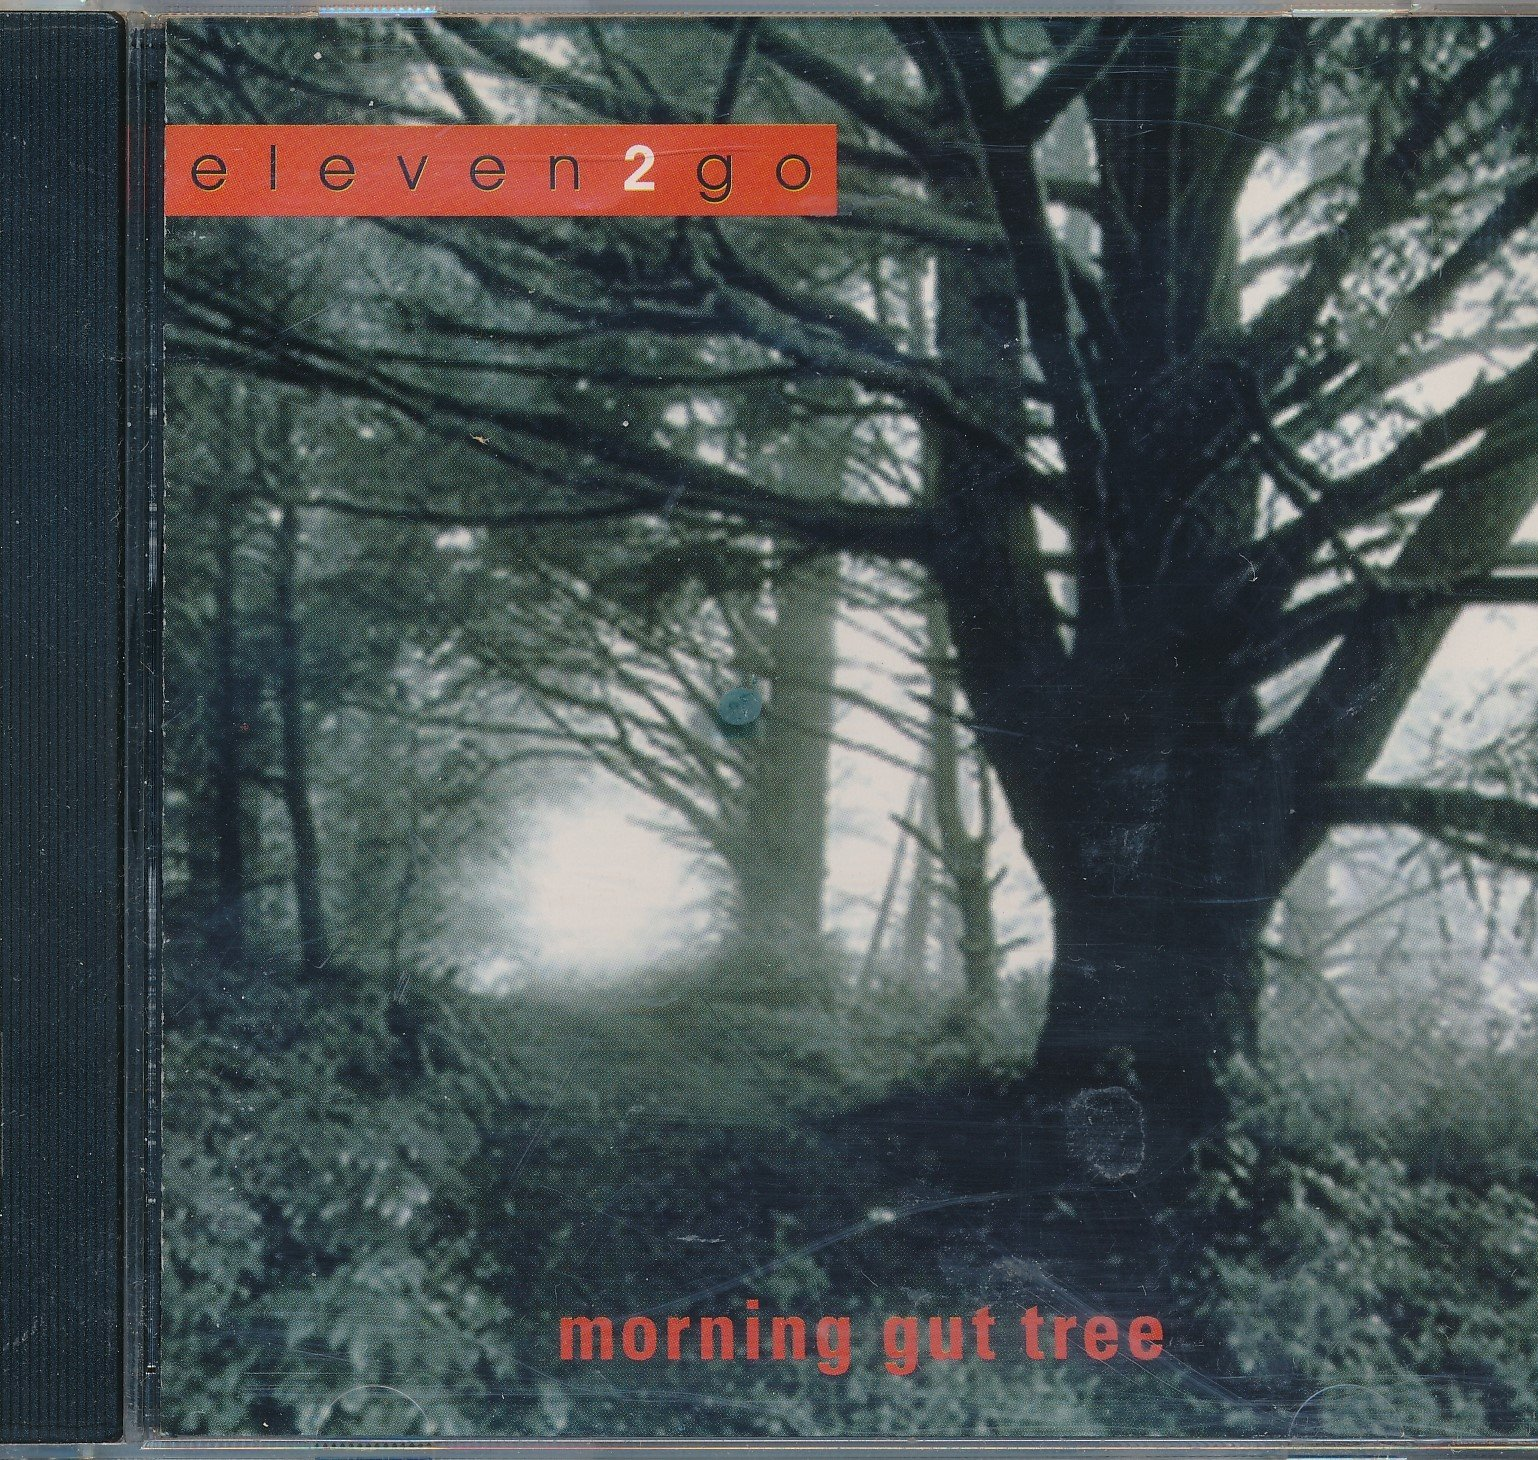 Eleven2go Morning Gut Tree : Songs- Archives; Think; Restless; Let It Down; Drifting; Background Noise; Sunless (1999 Music CD), John PetersonMichael Rains; Jesie Vanden Dogen; Josh Schachterle; Joao Cowperthwaite